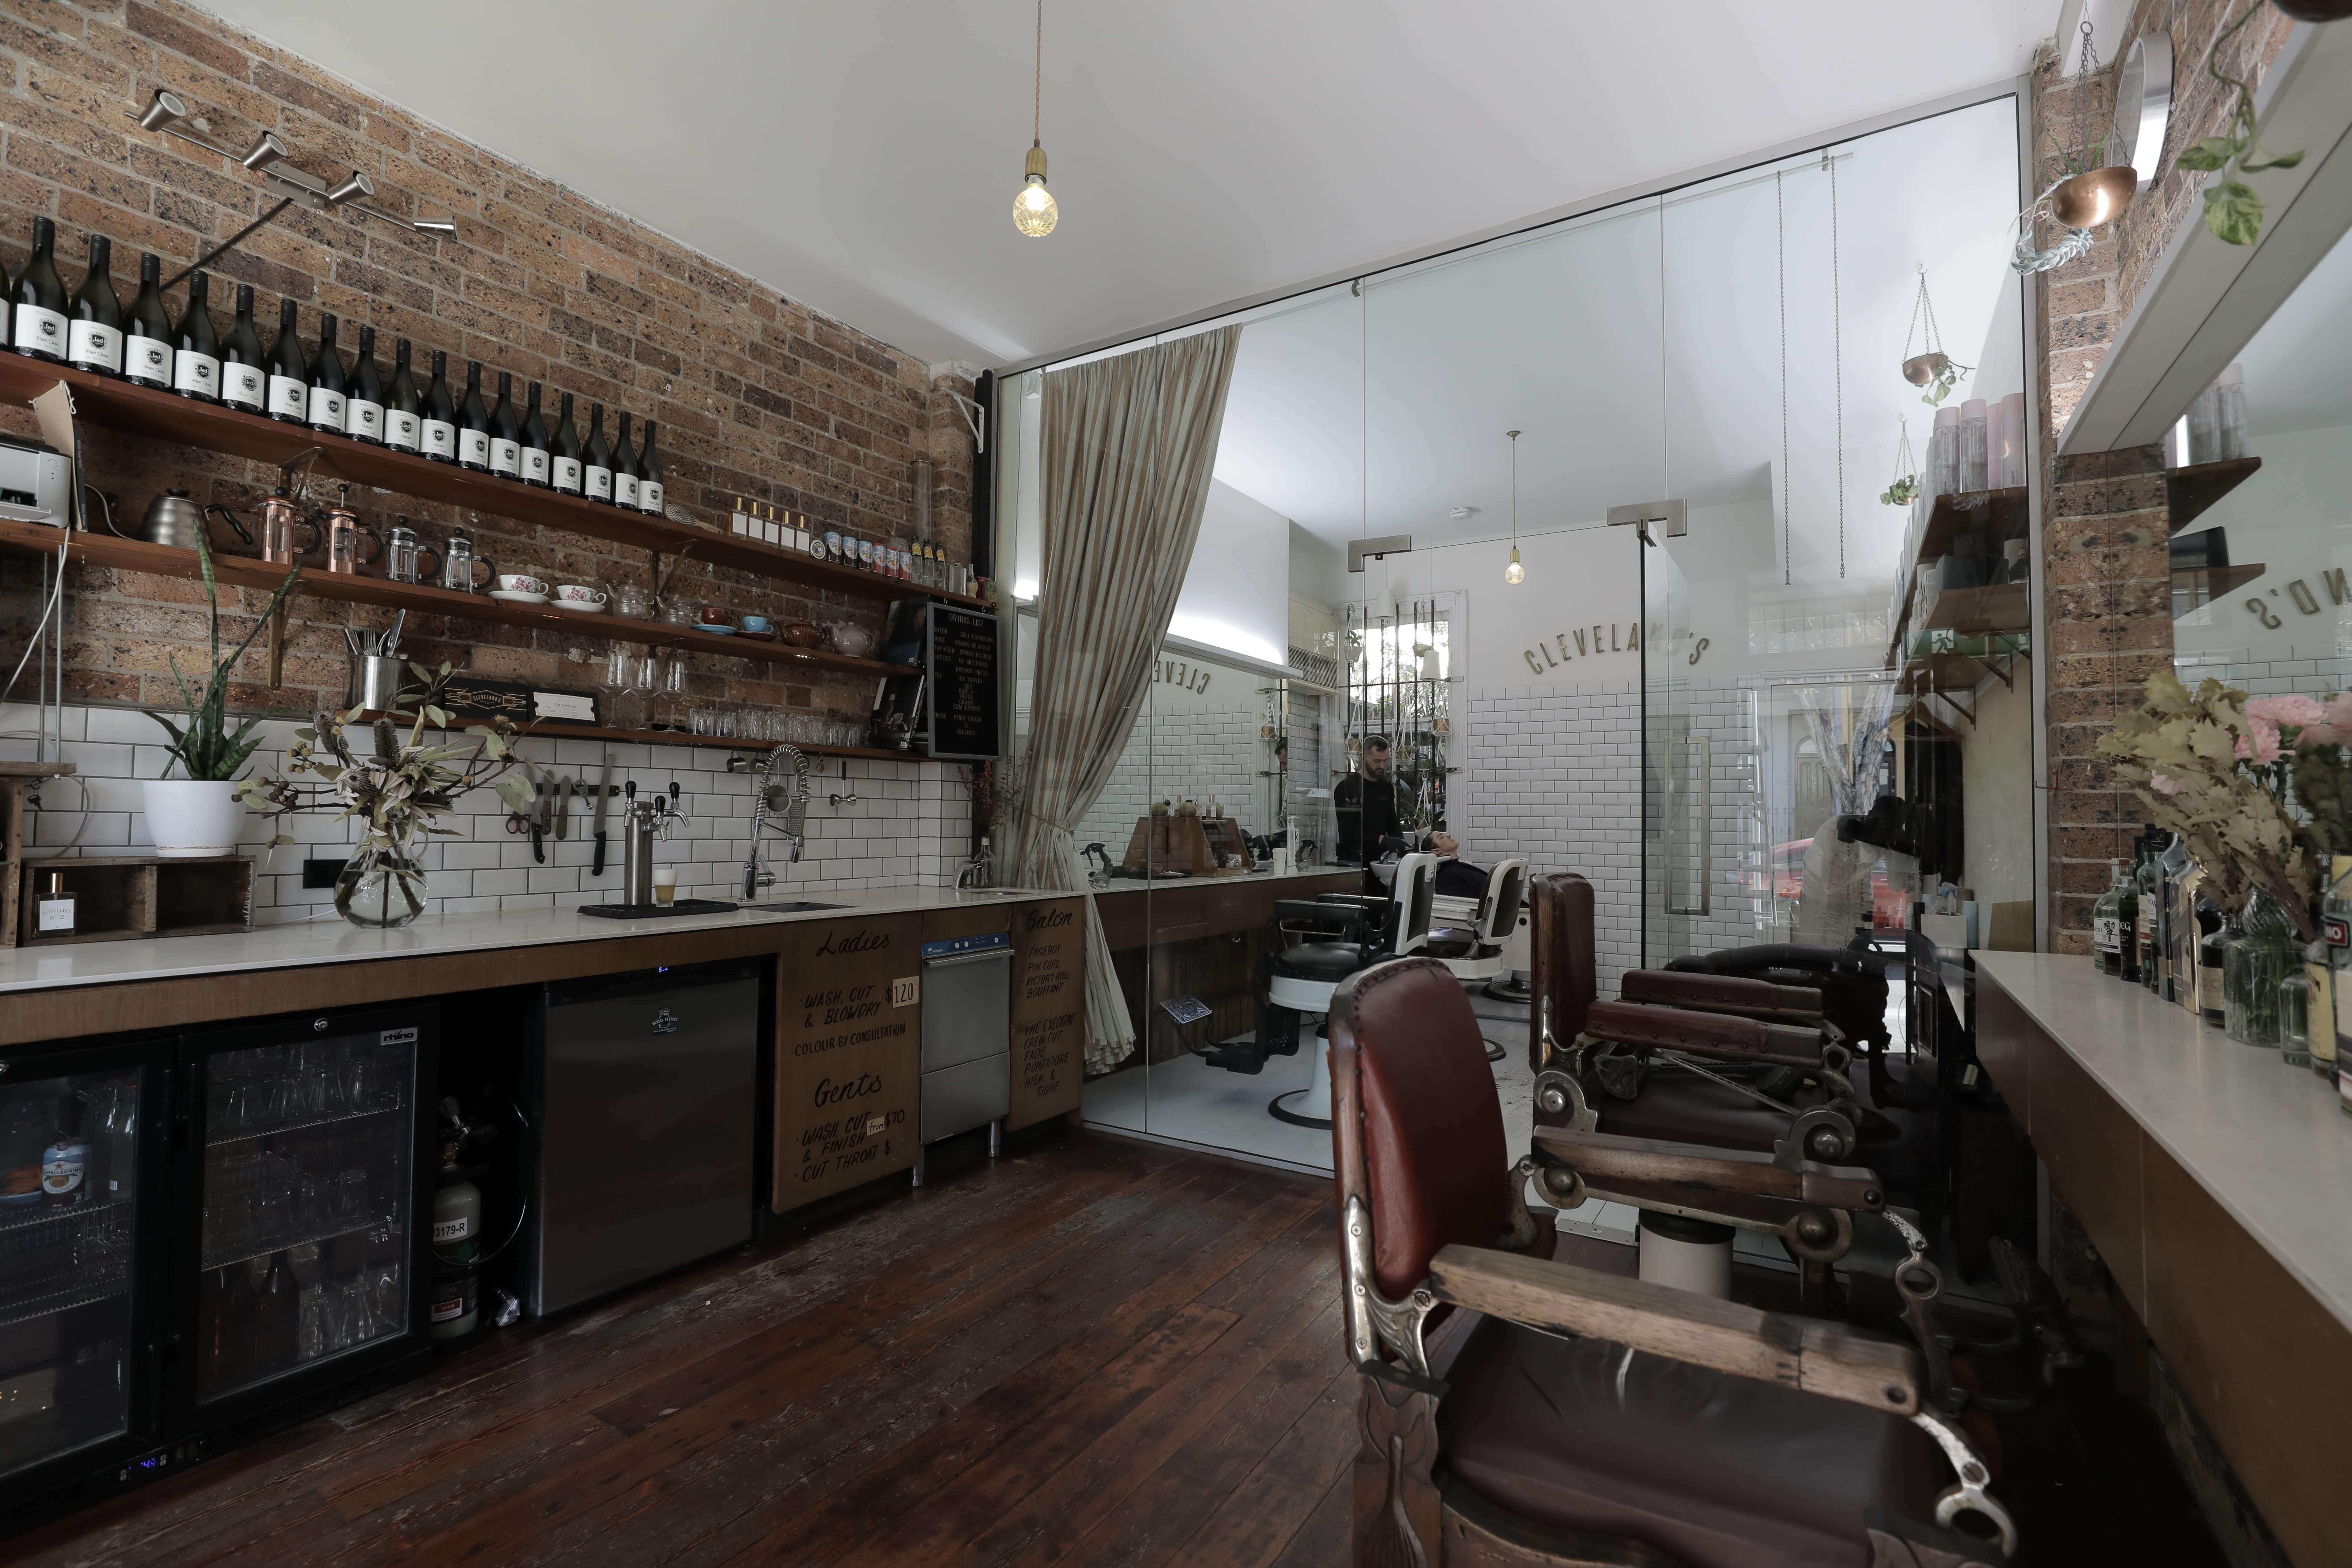 Sydney Barber/Salon